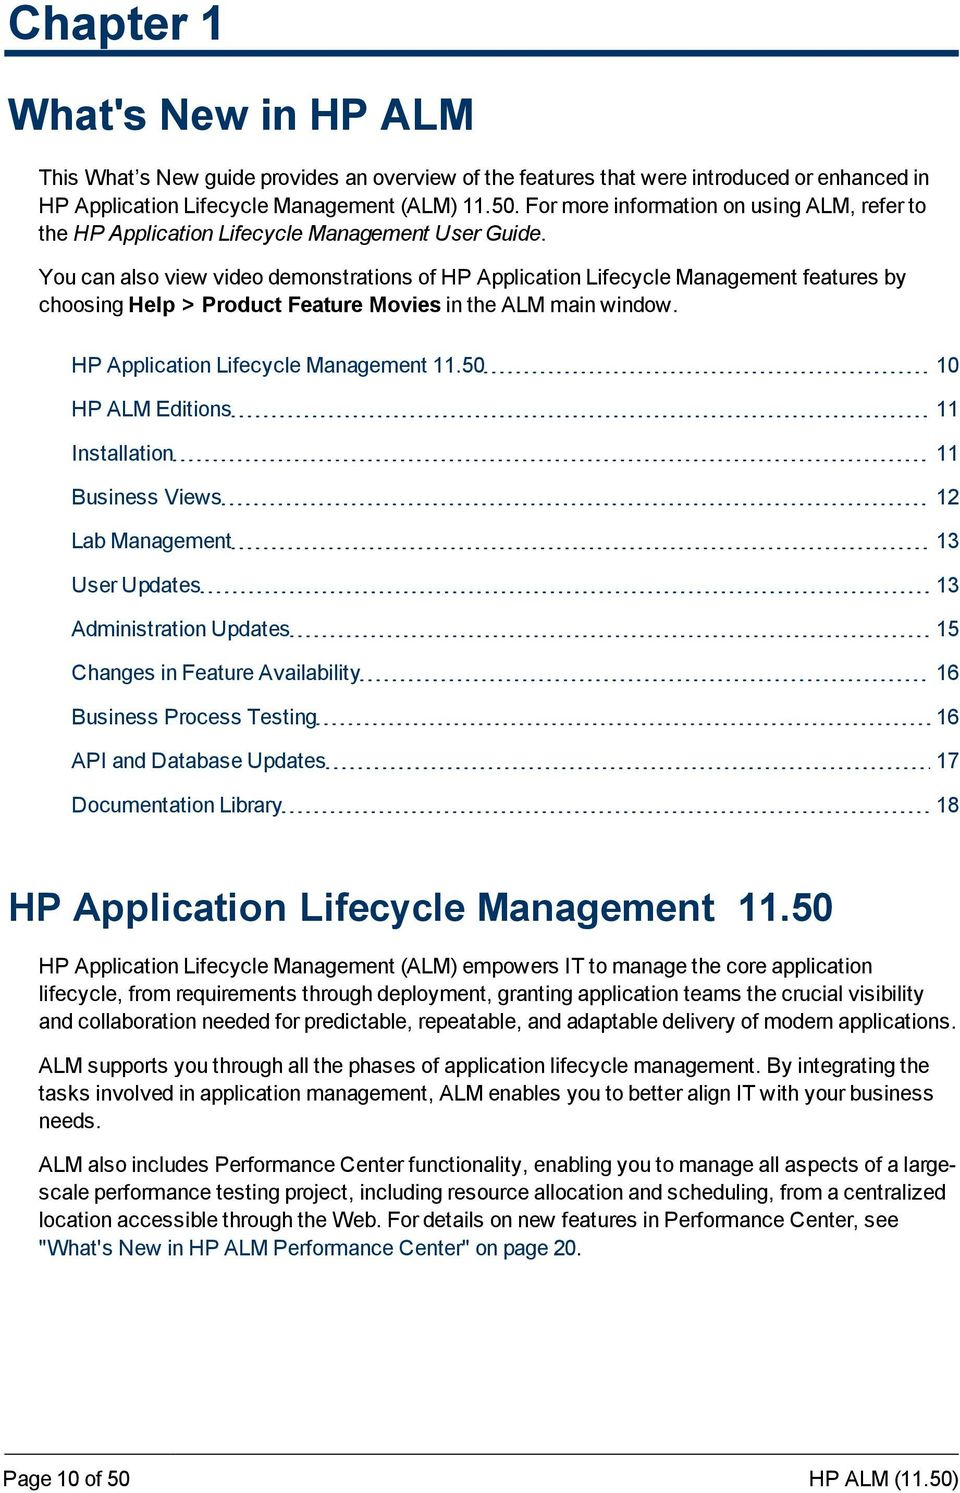 You can also view video demonstrations of HP Application Lifecycle Management features by choosing Help > Product Feature Movies in the ALM main window. HP Application Lifecycle Management 11.